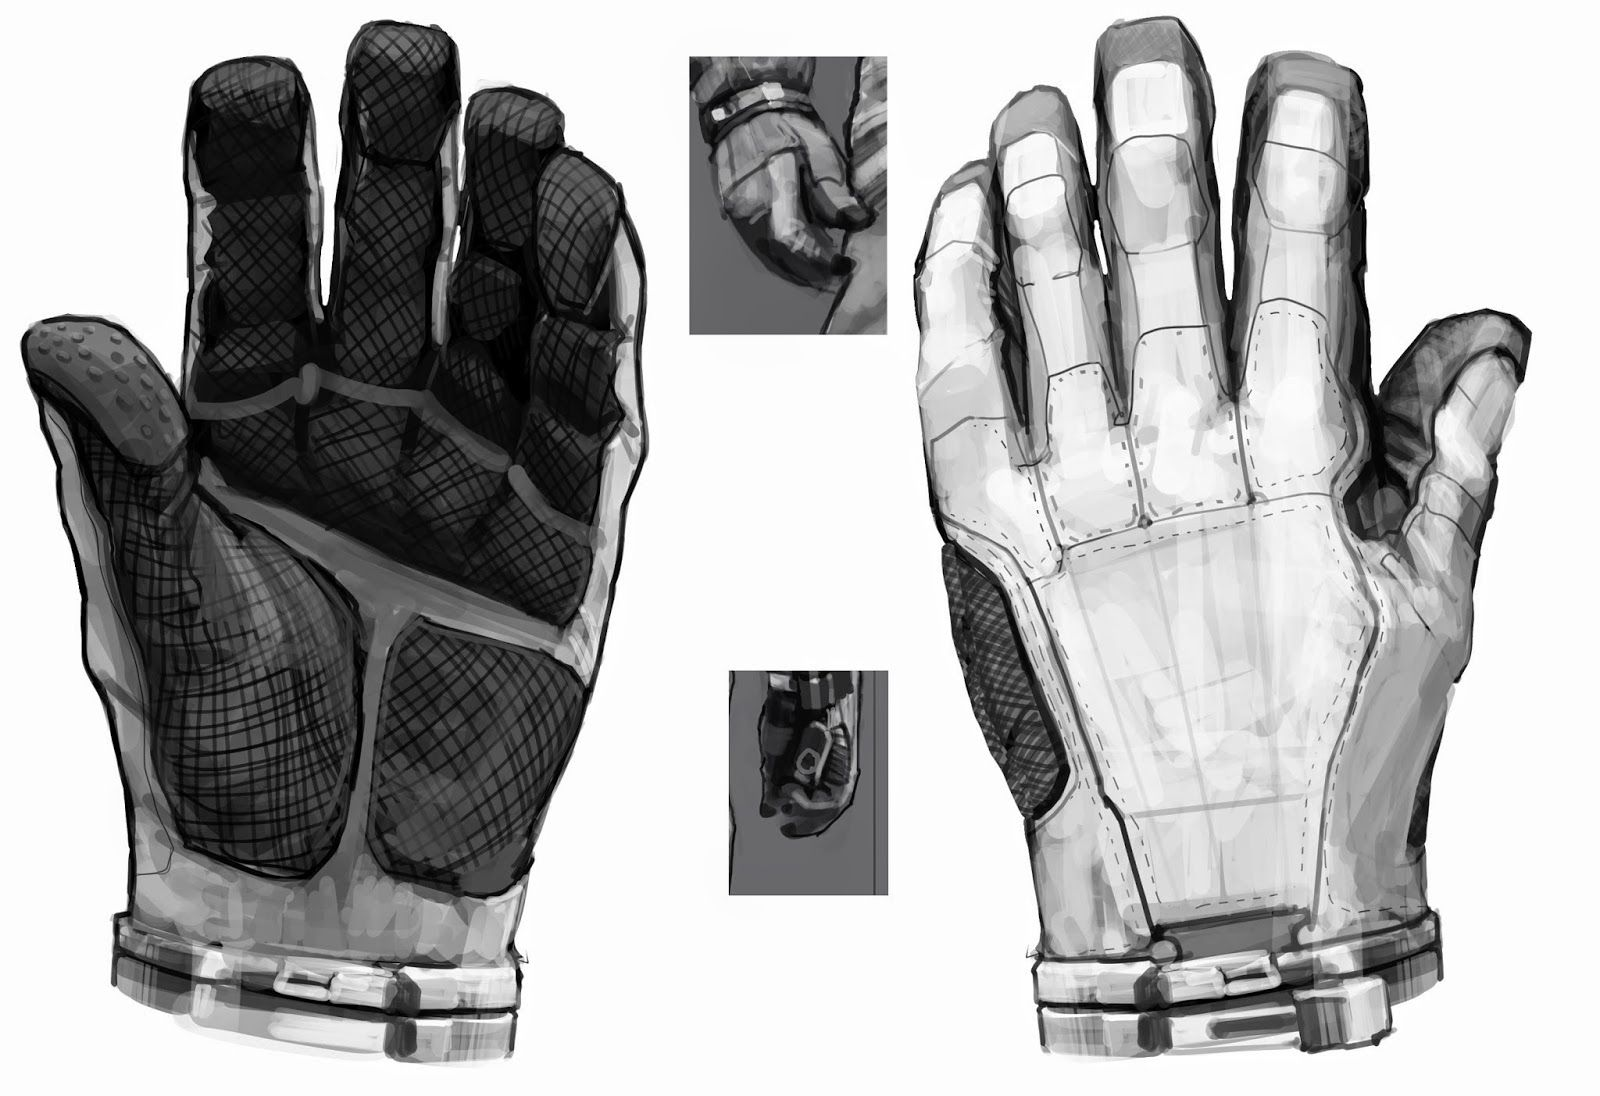 space suit glove hardware - photo #16